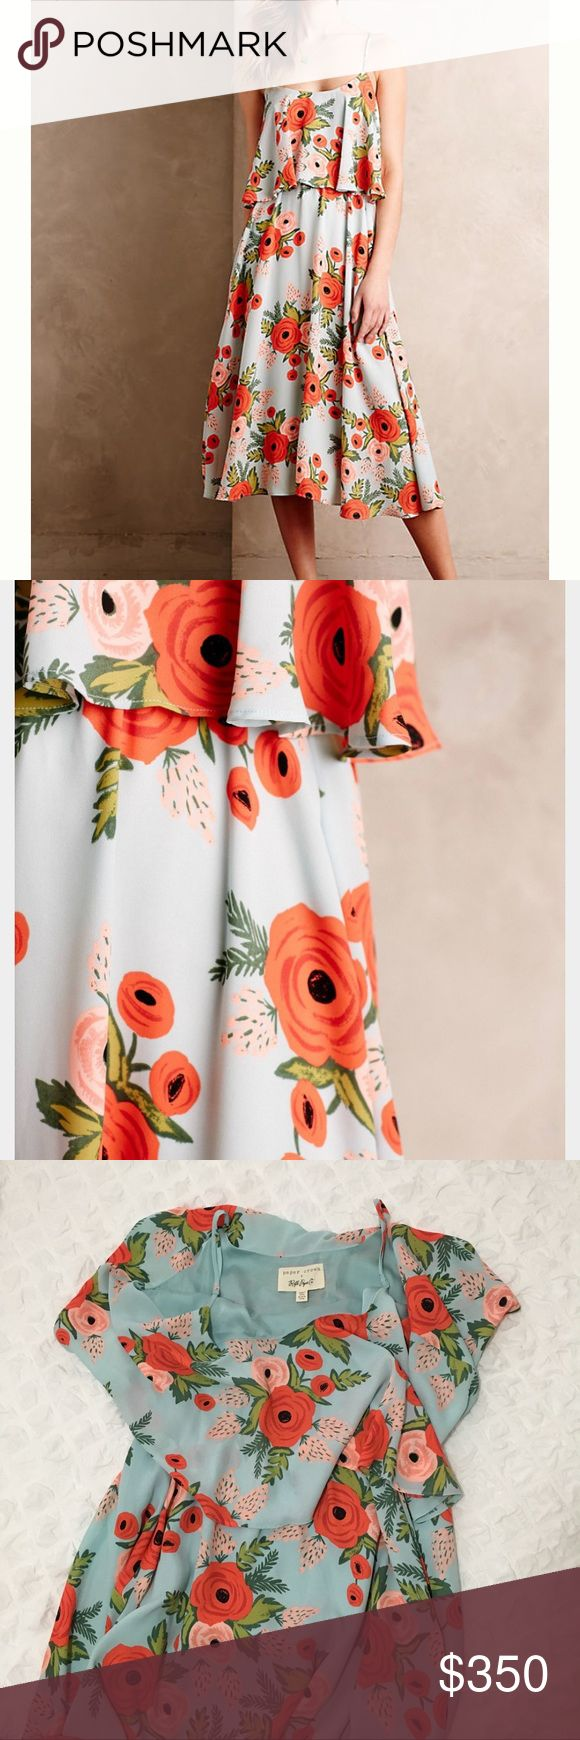 🌺Rare!🌸 Paper Crown/Rifle Paper Co Dress! Paper Crown/Rifle Paper Company/Anthropologie Floral Poppy Fields Midi Dress! ✨🌼🌿👑 Perfect Condition. NWT! Size M. No Longer Sold. Rifle Paper Company Dresses Midi